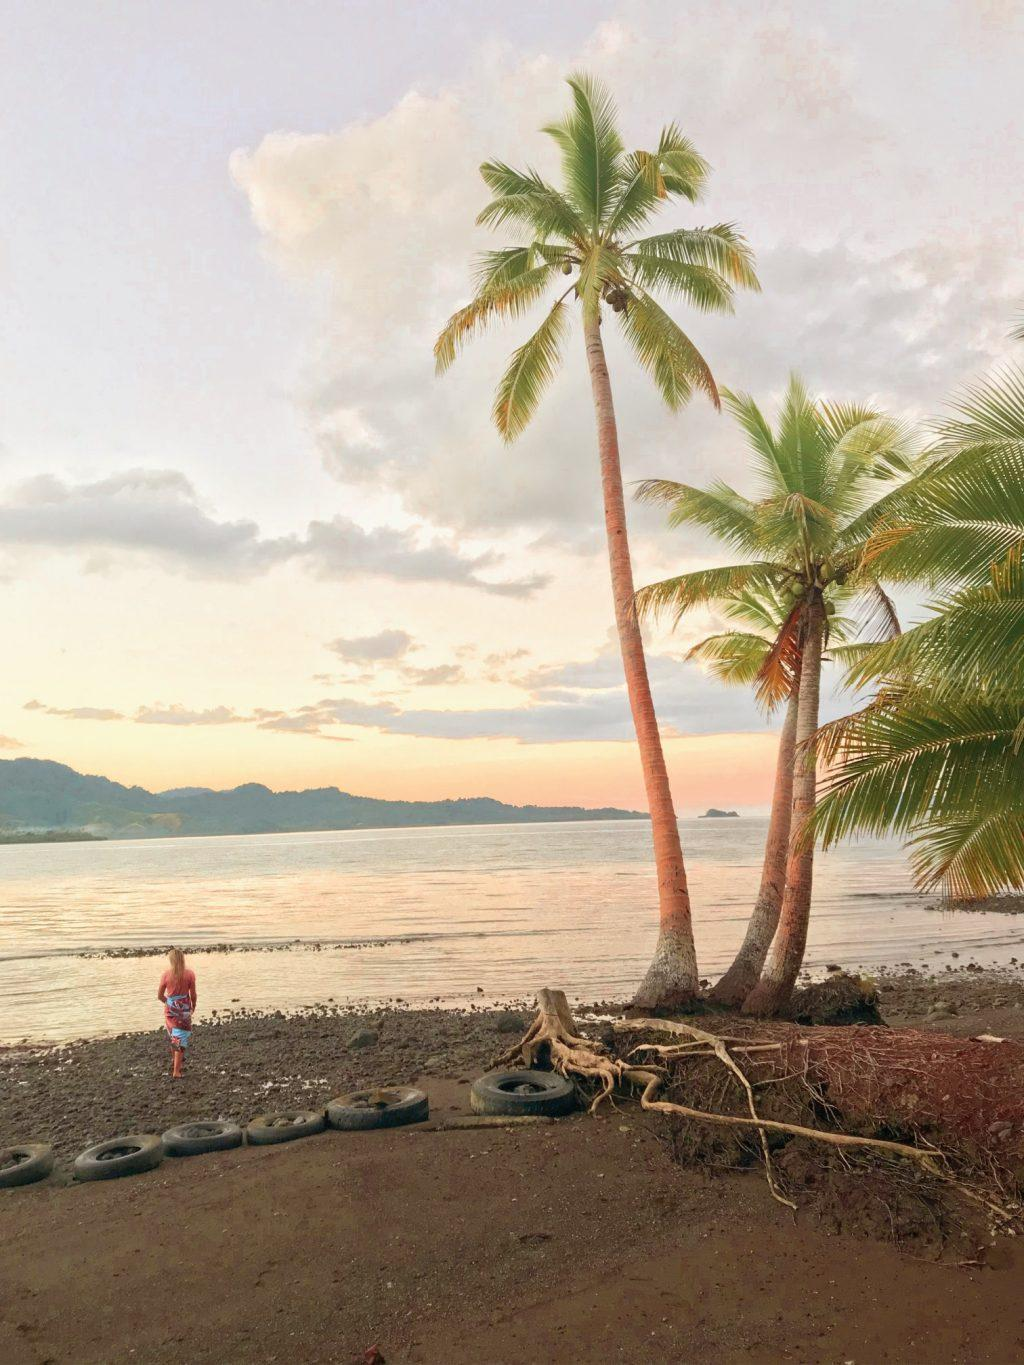 Armstrong walks on the beach on the island of Vanua Levu in Fiji in May 2019. Armstrong said she participated in the Pepperdine Medical and Service Mission in Fiji after spending a year abroad in Argentina.